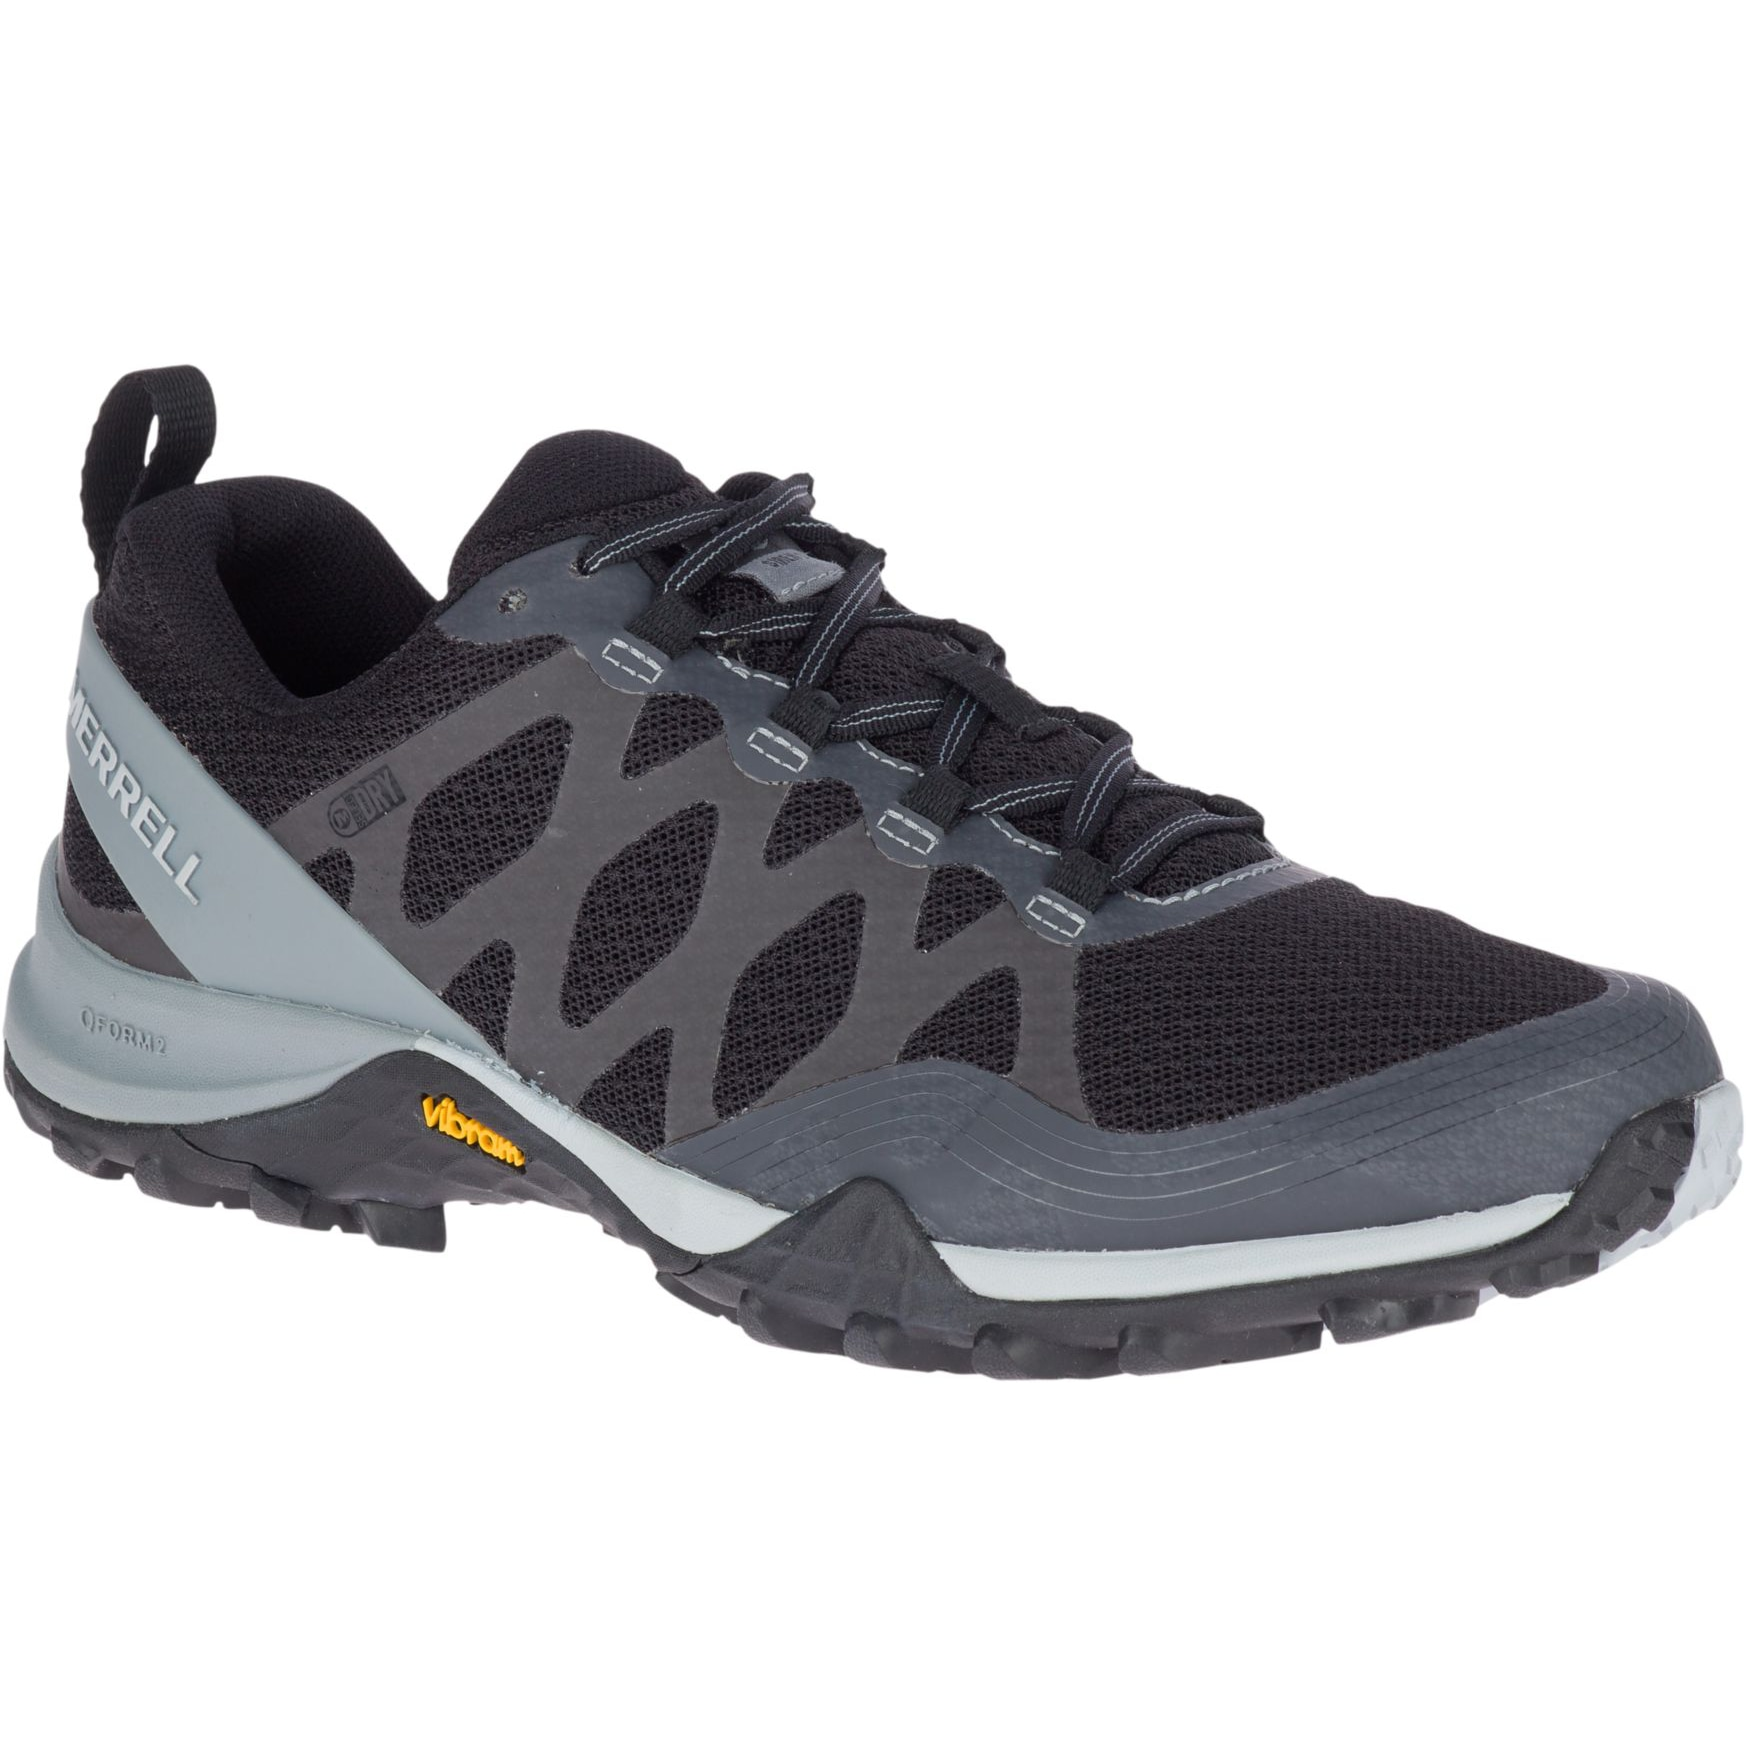 Siren 3 Waterproof Shoe - Women's